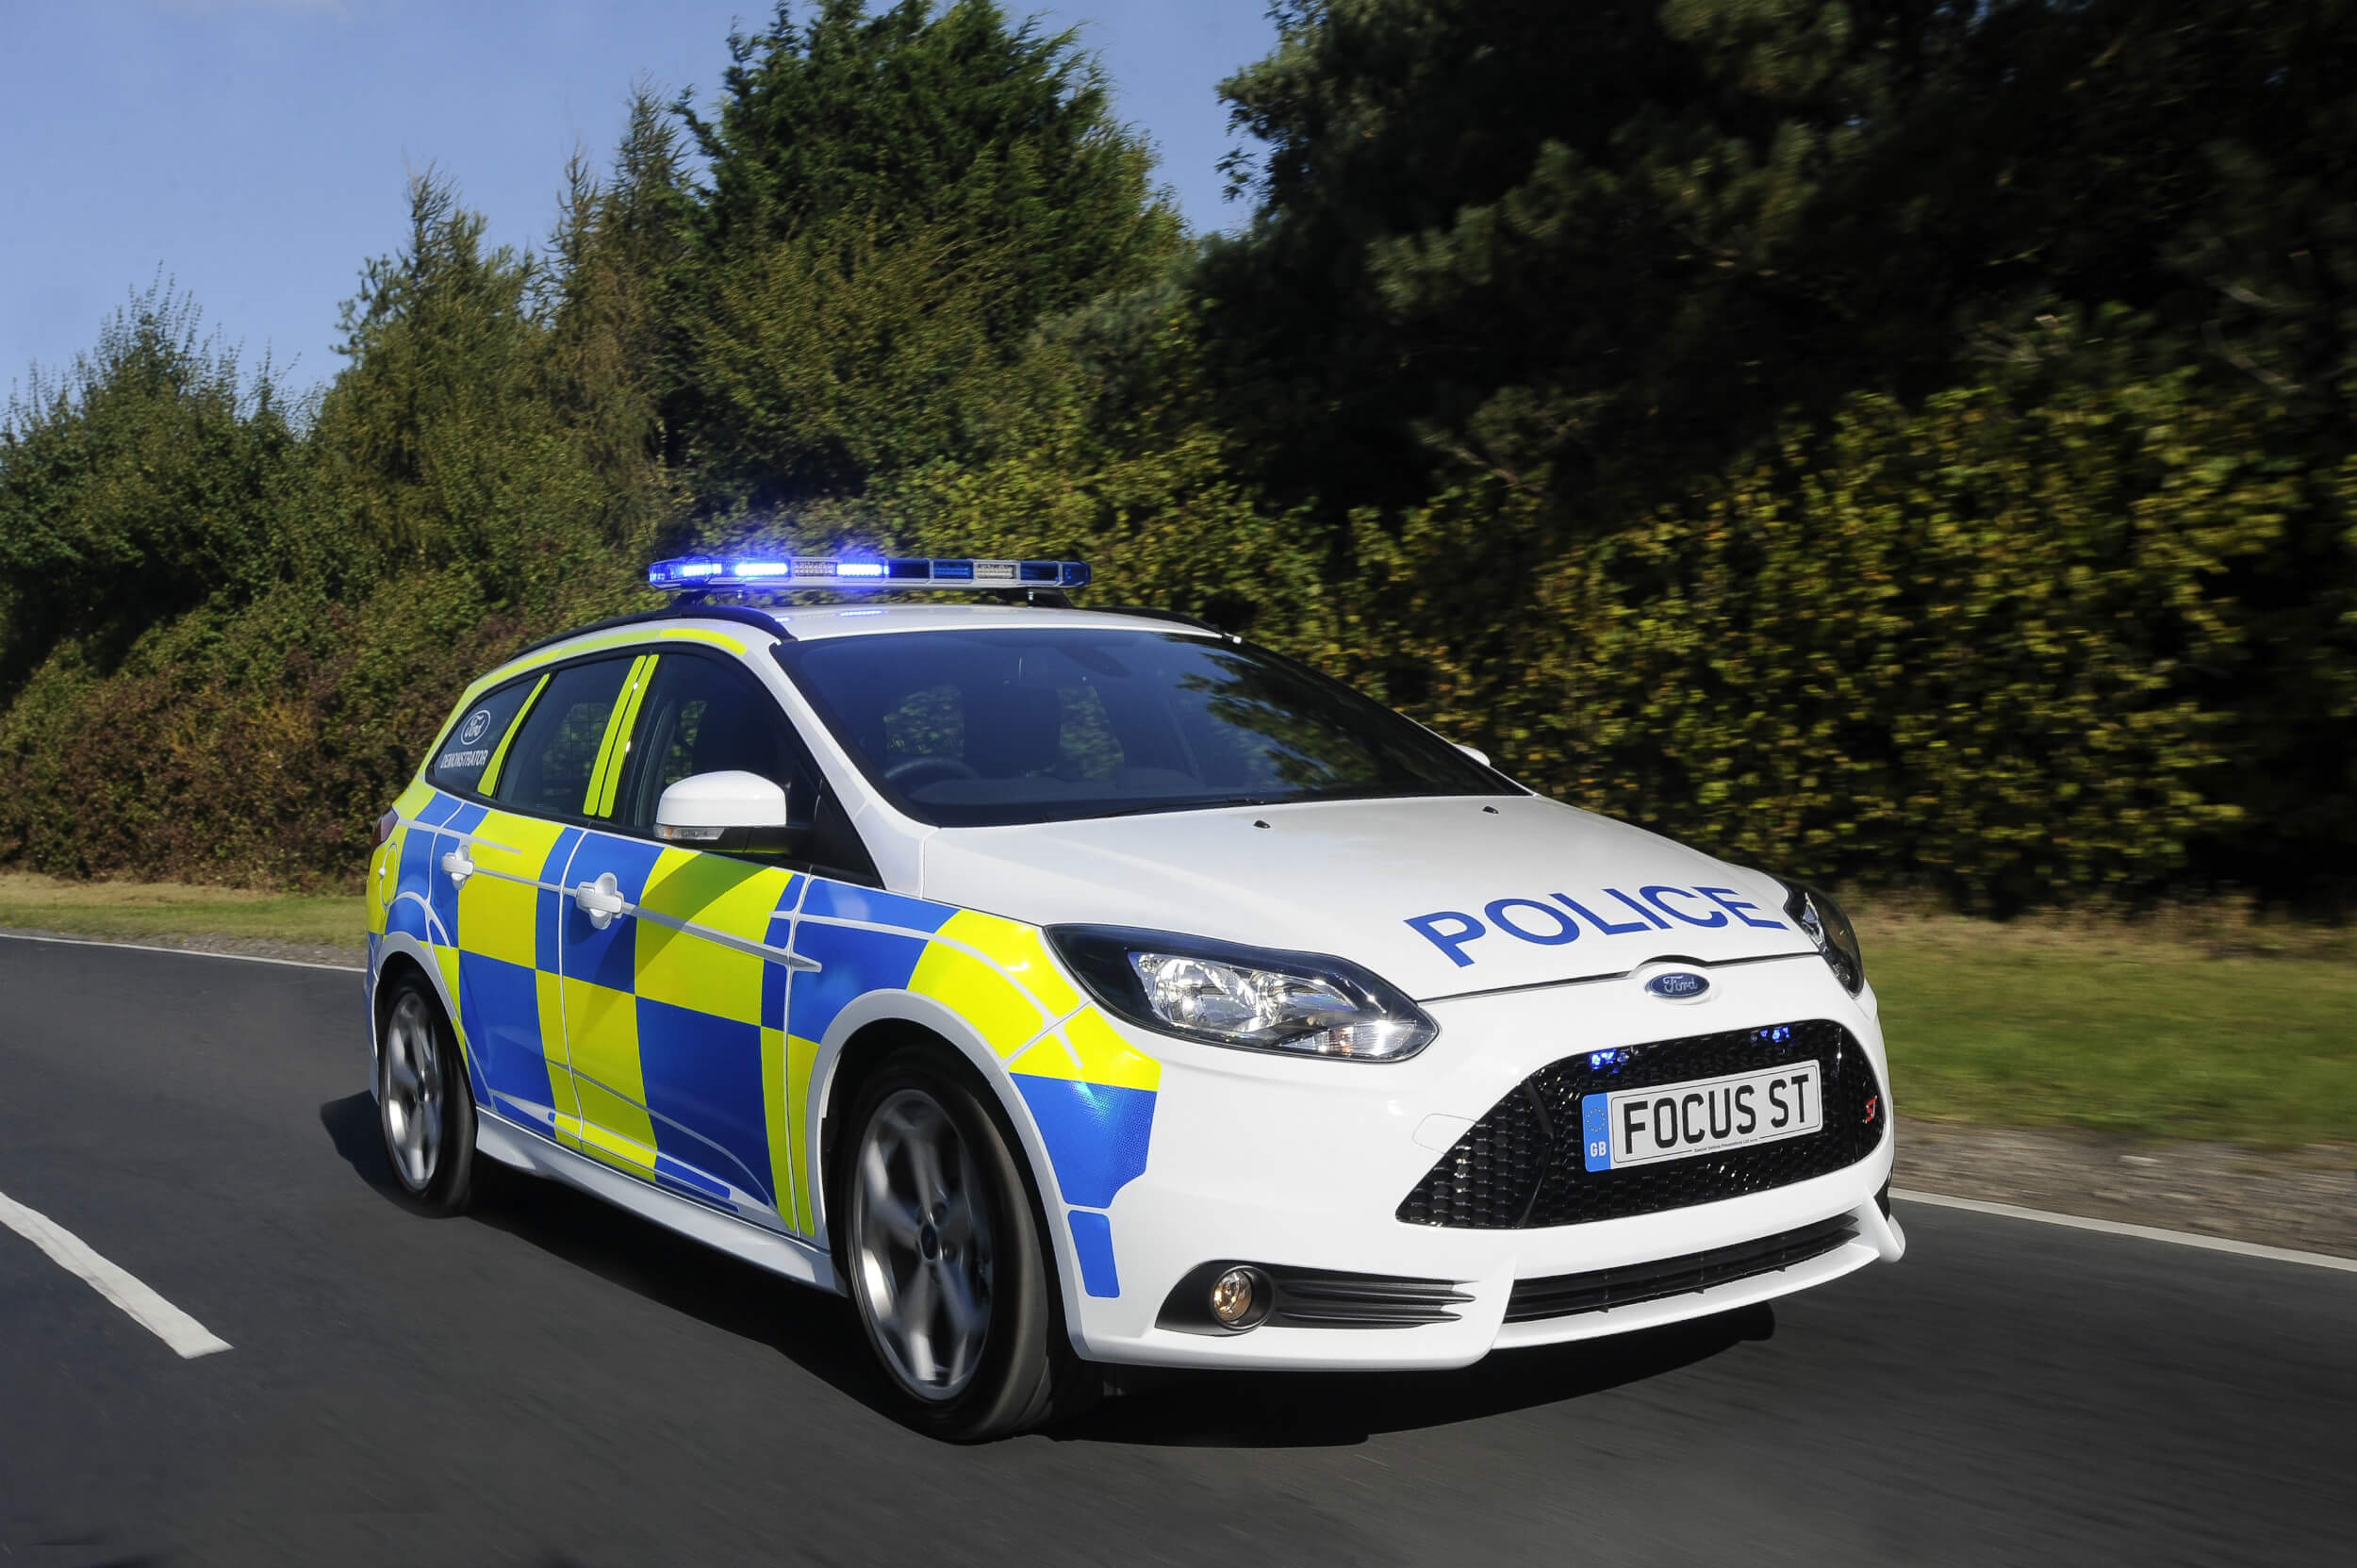 Police car patrolling looking for drivers with too many penalty points on their driving licence